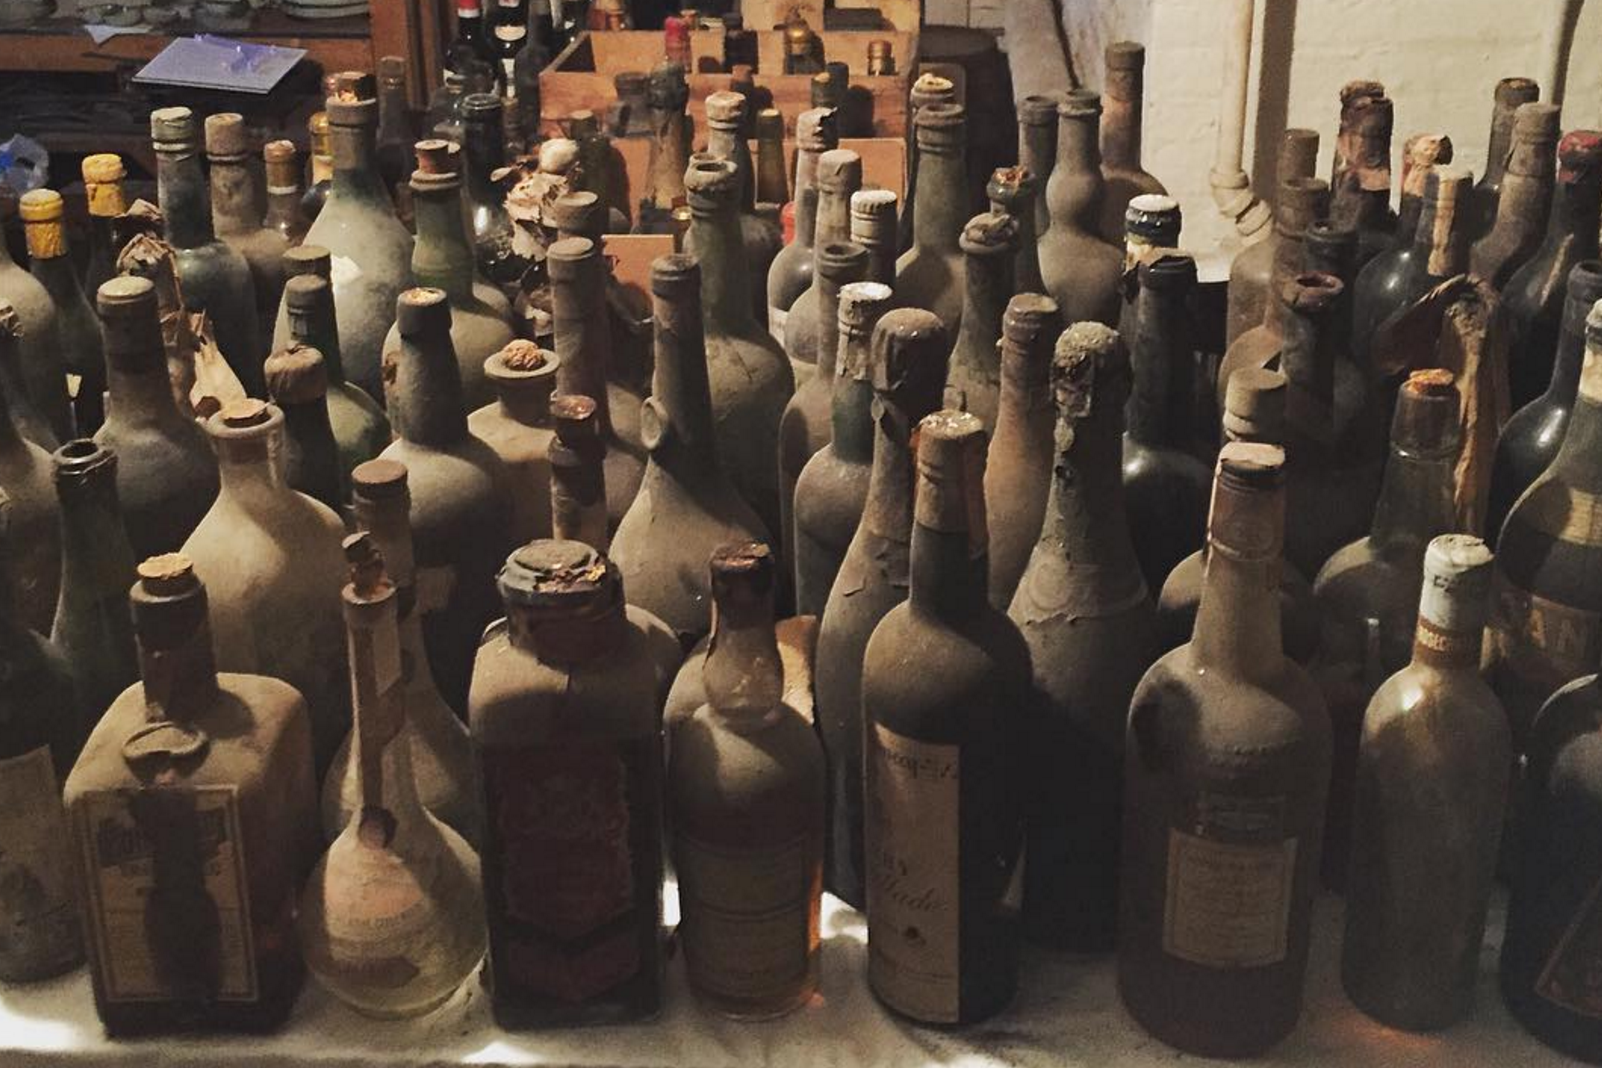 A New Jersey museum has discovered Madeira wine in its cellar dating back to 1796